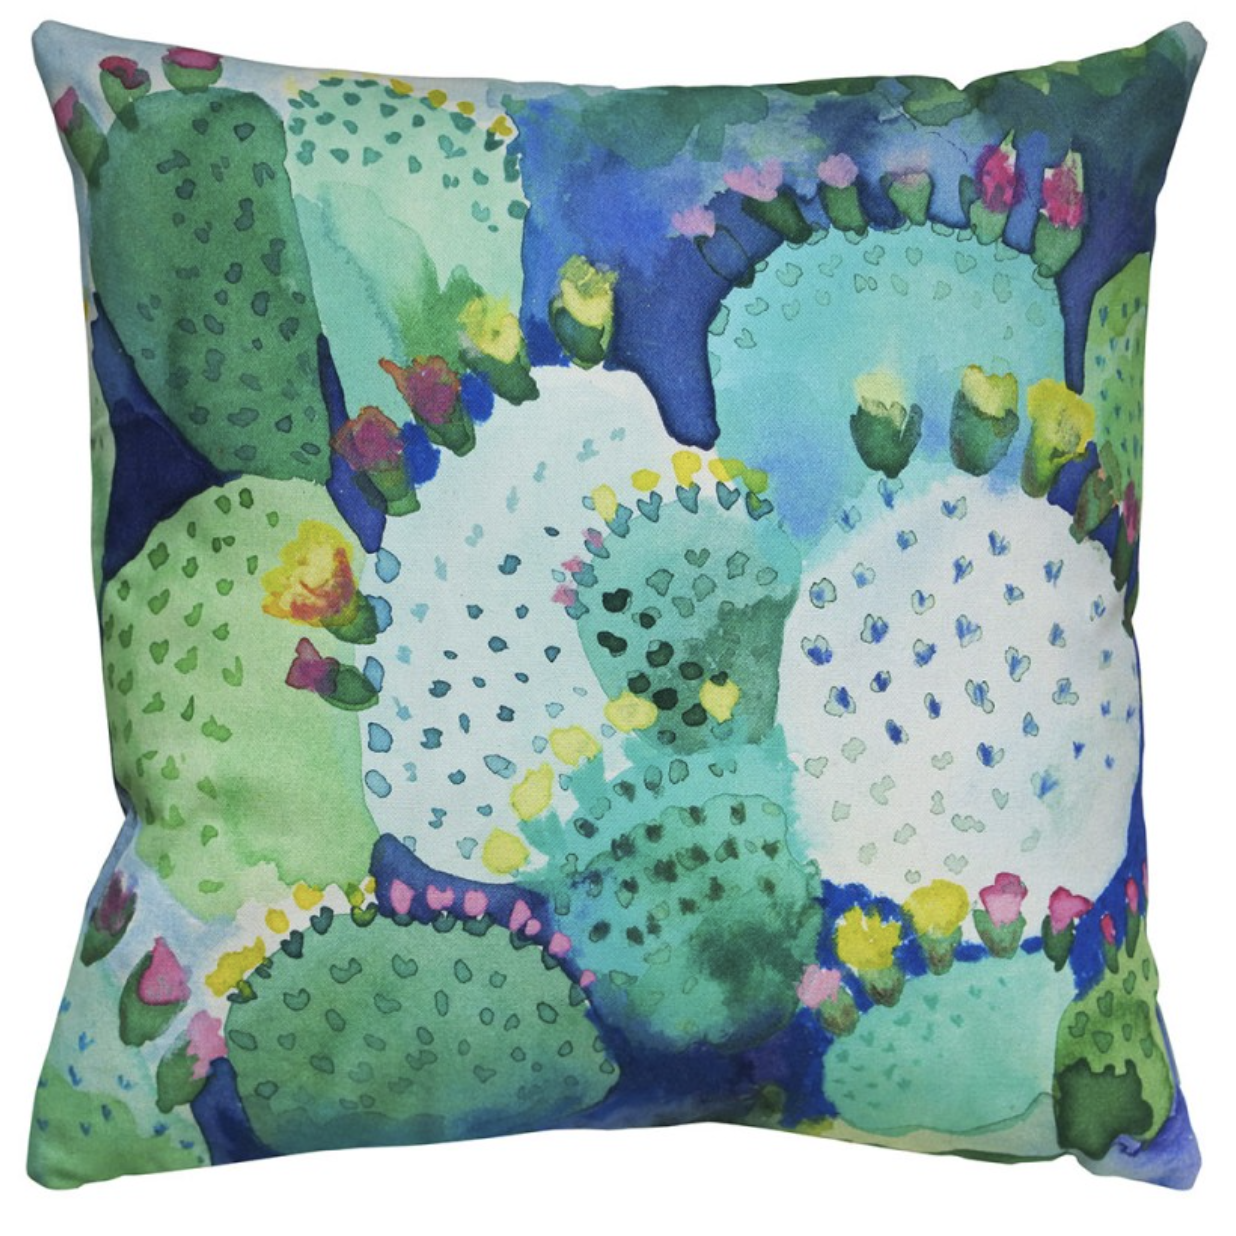 Cactus Cushion , Bluebell Gray £50